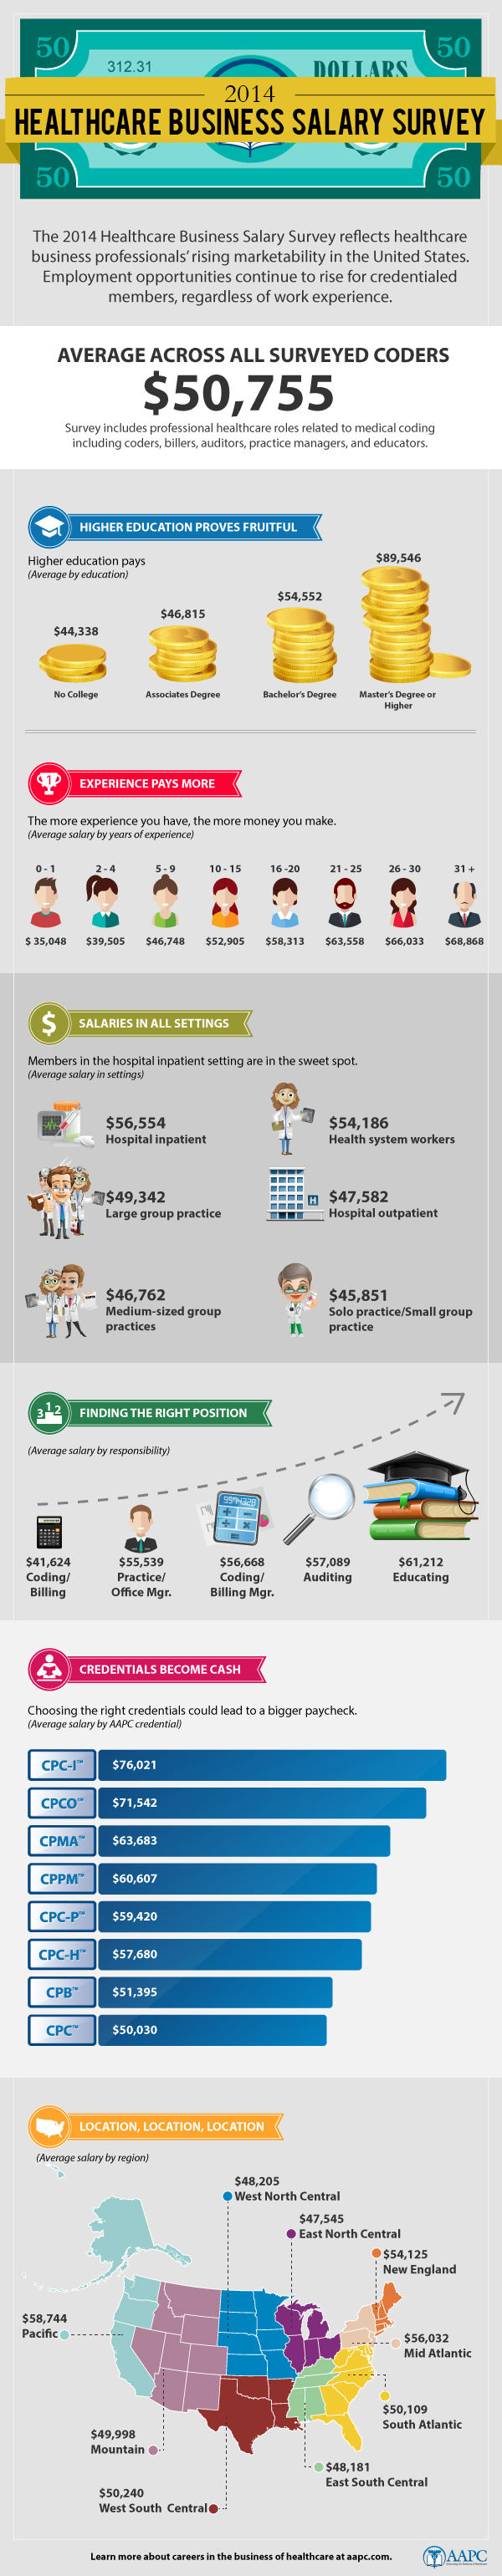 2014 Healthcare Business Salary Survey